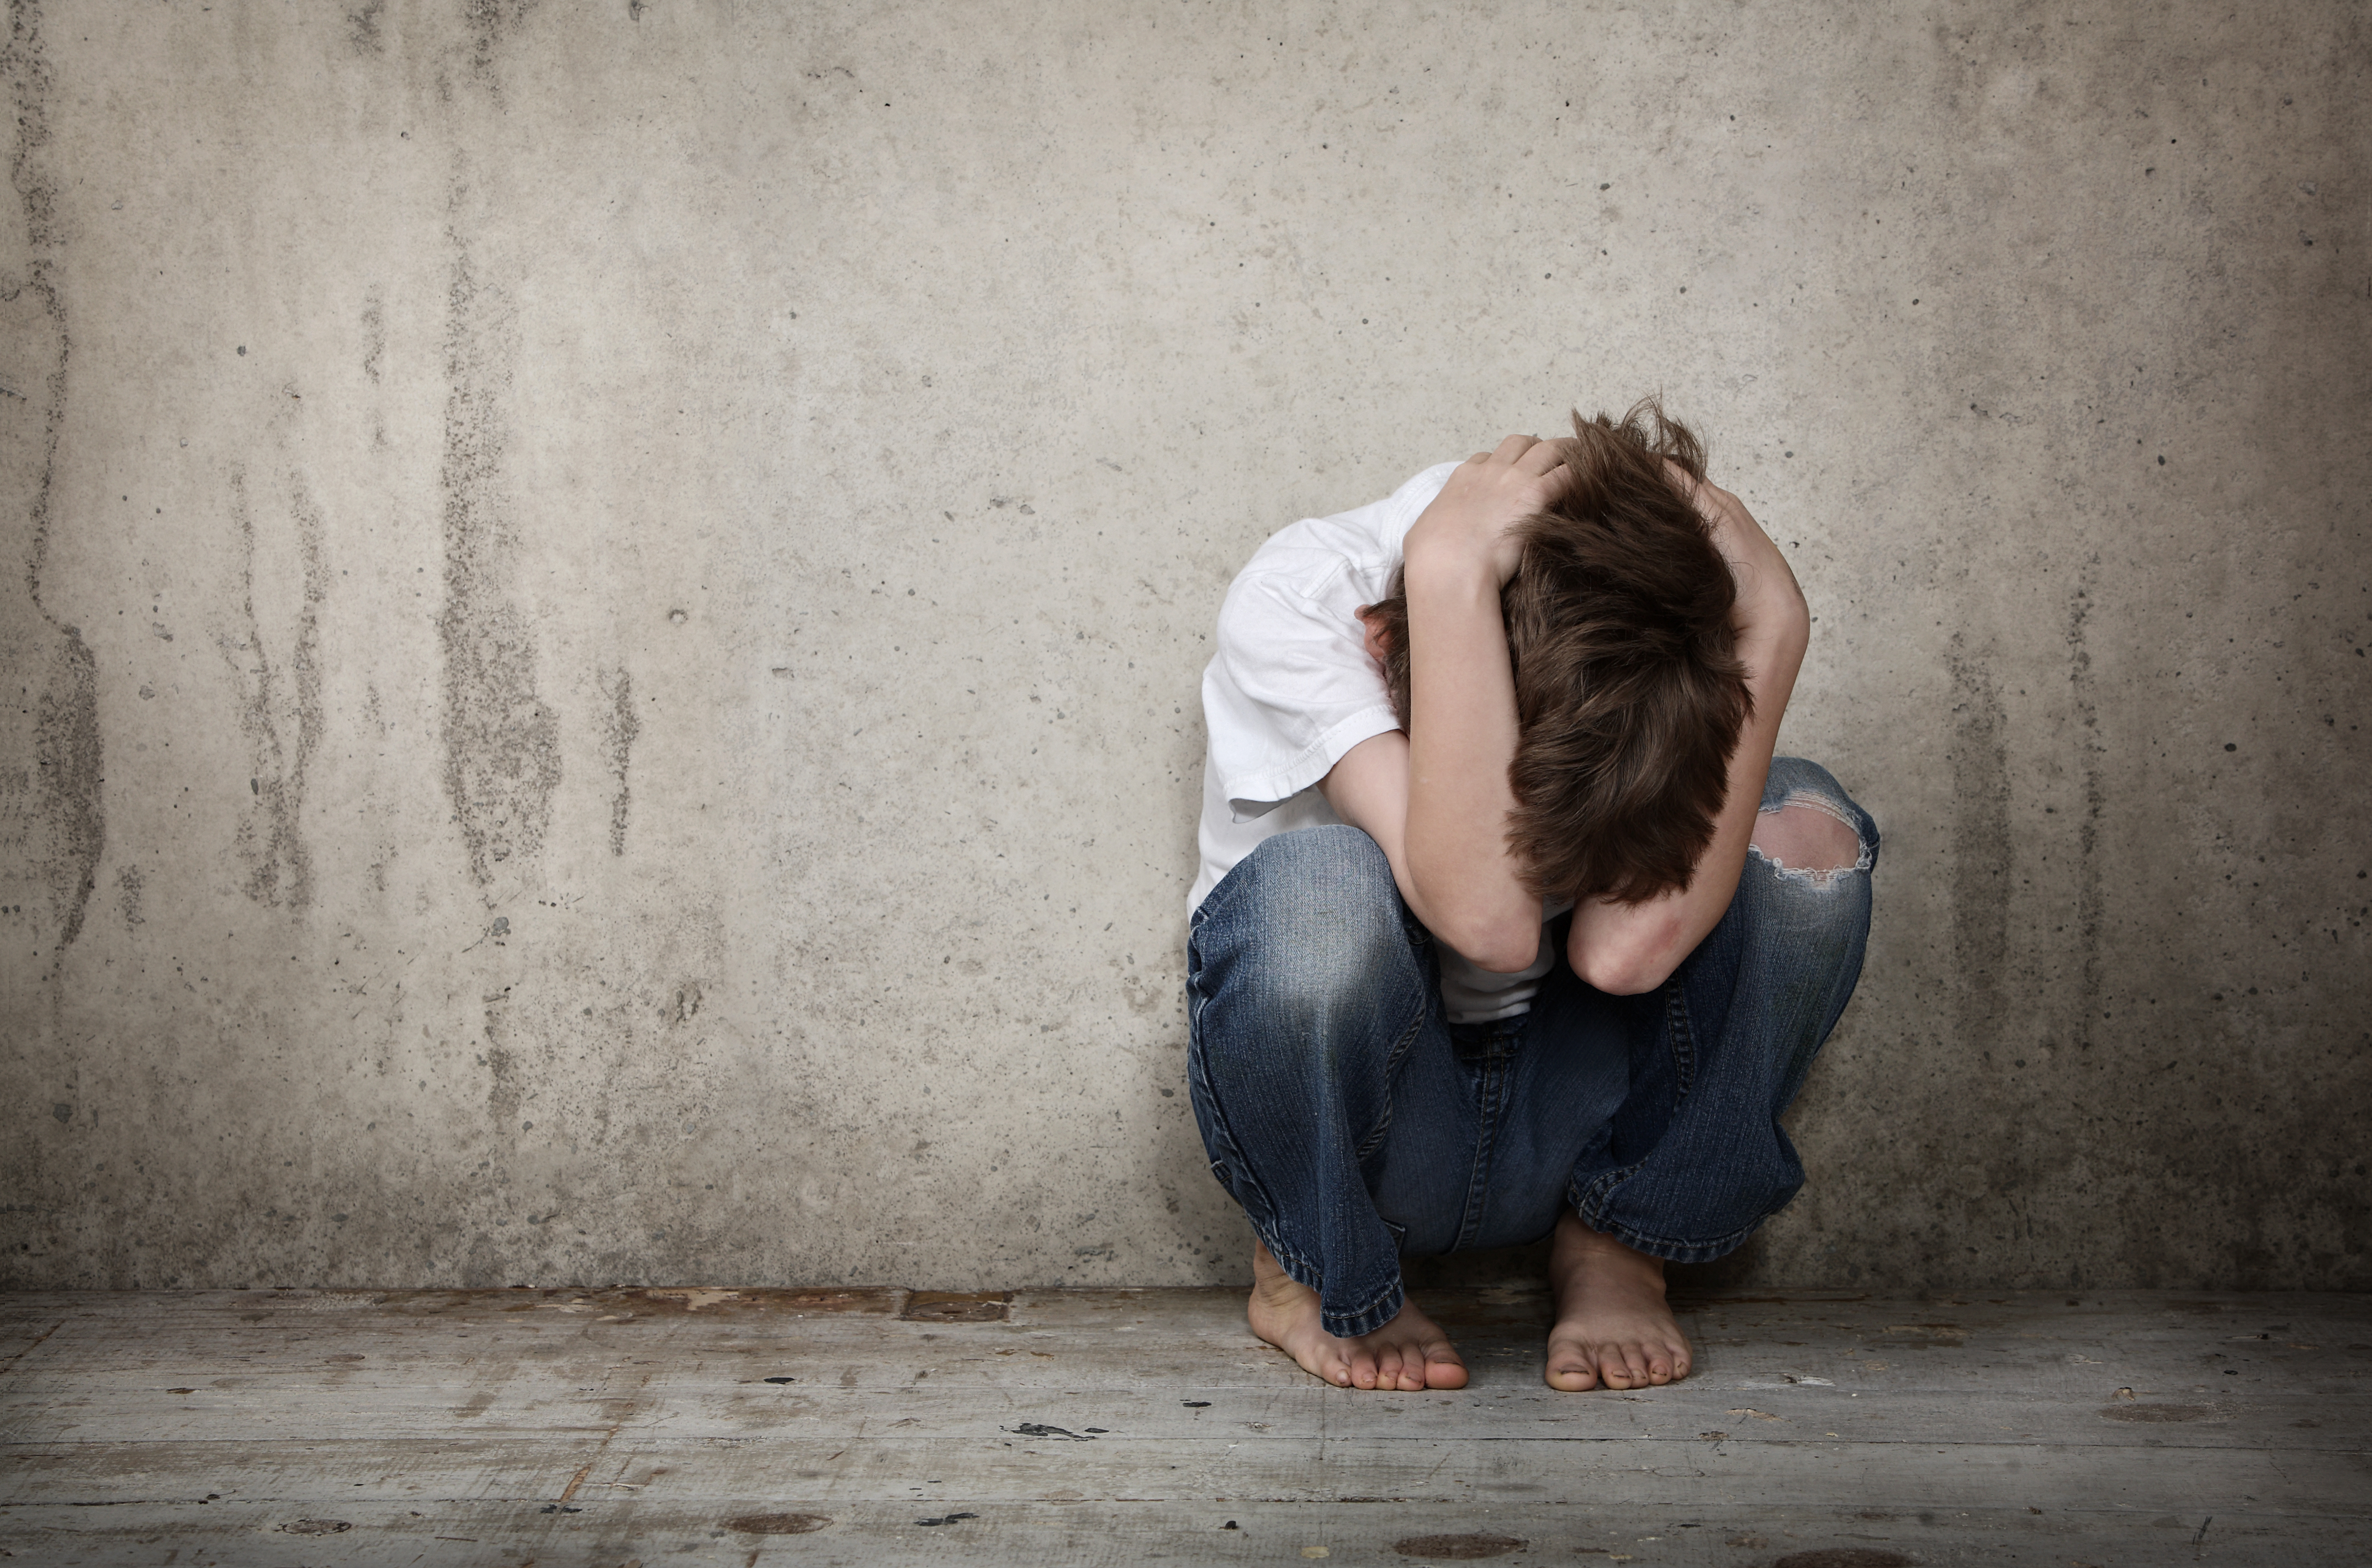 Police arrest the key informer and evidence provider in the child abuse case